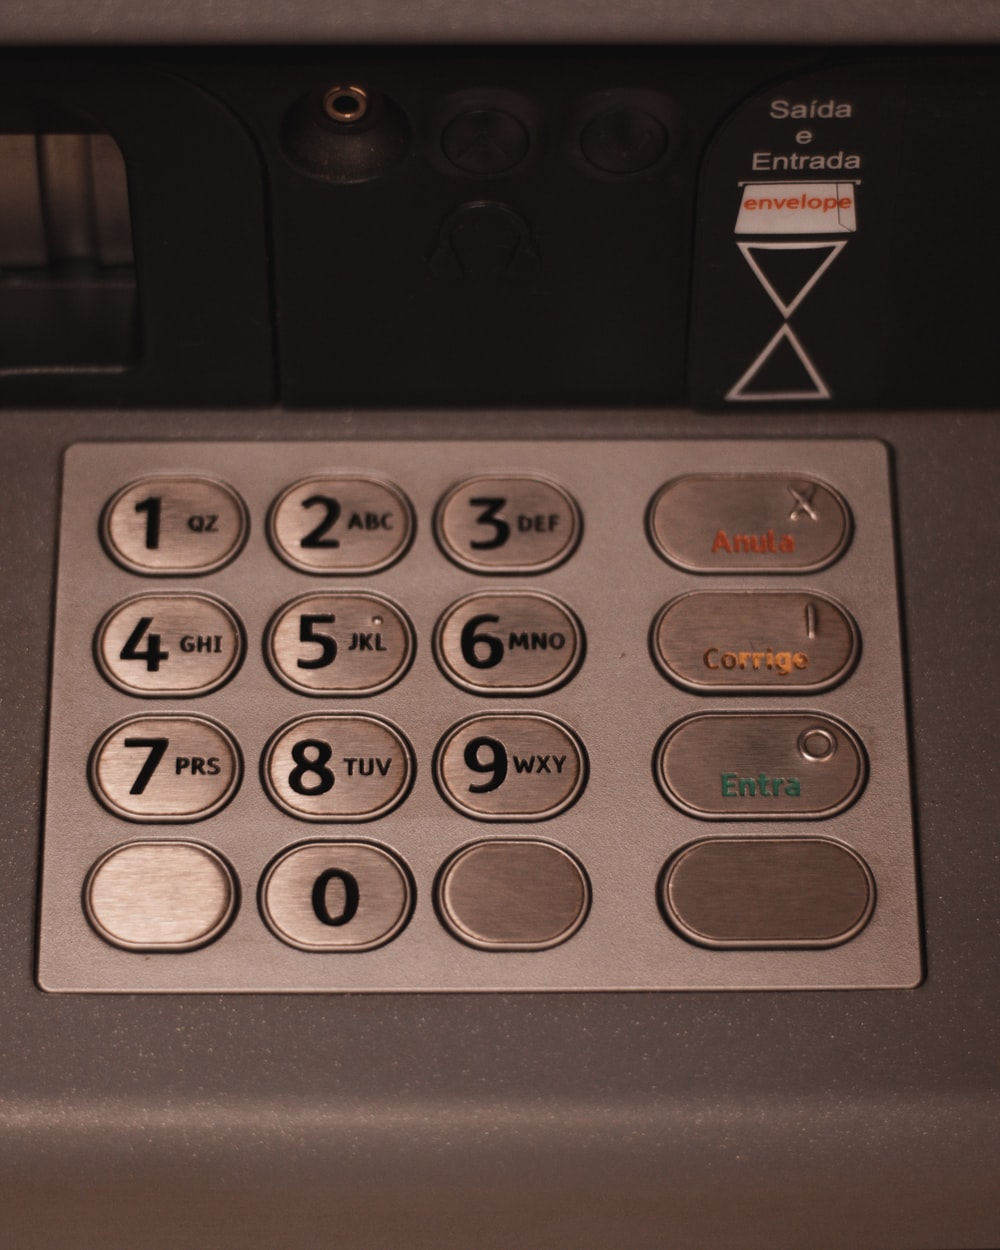 black and gray control panel